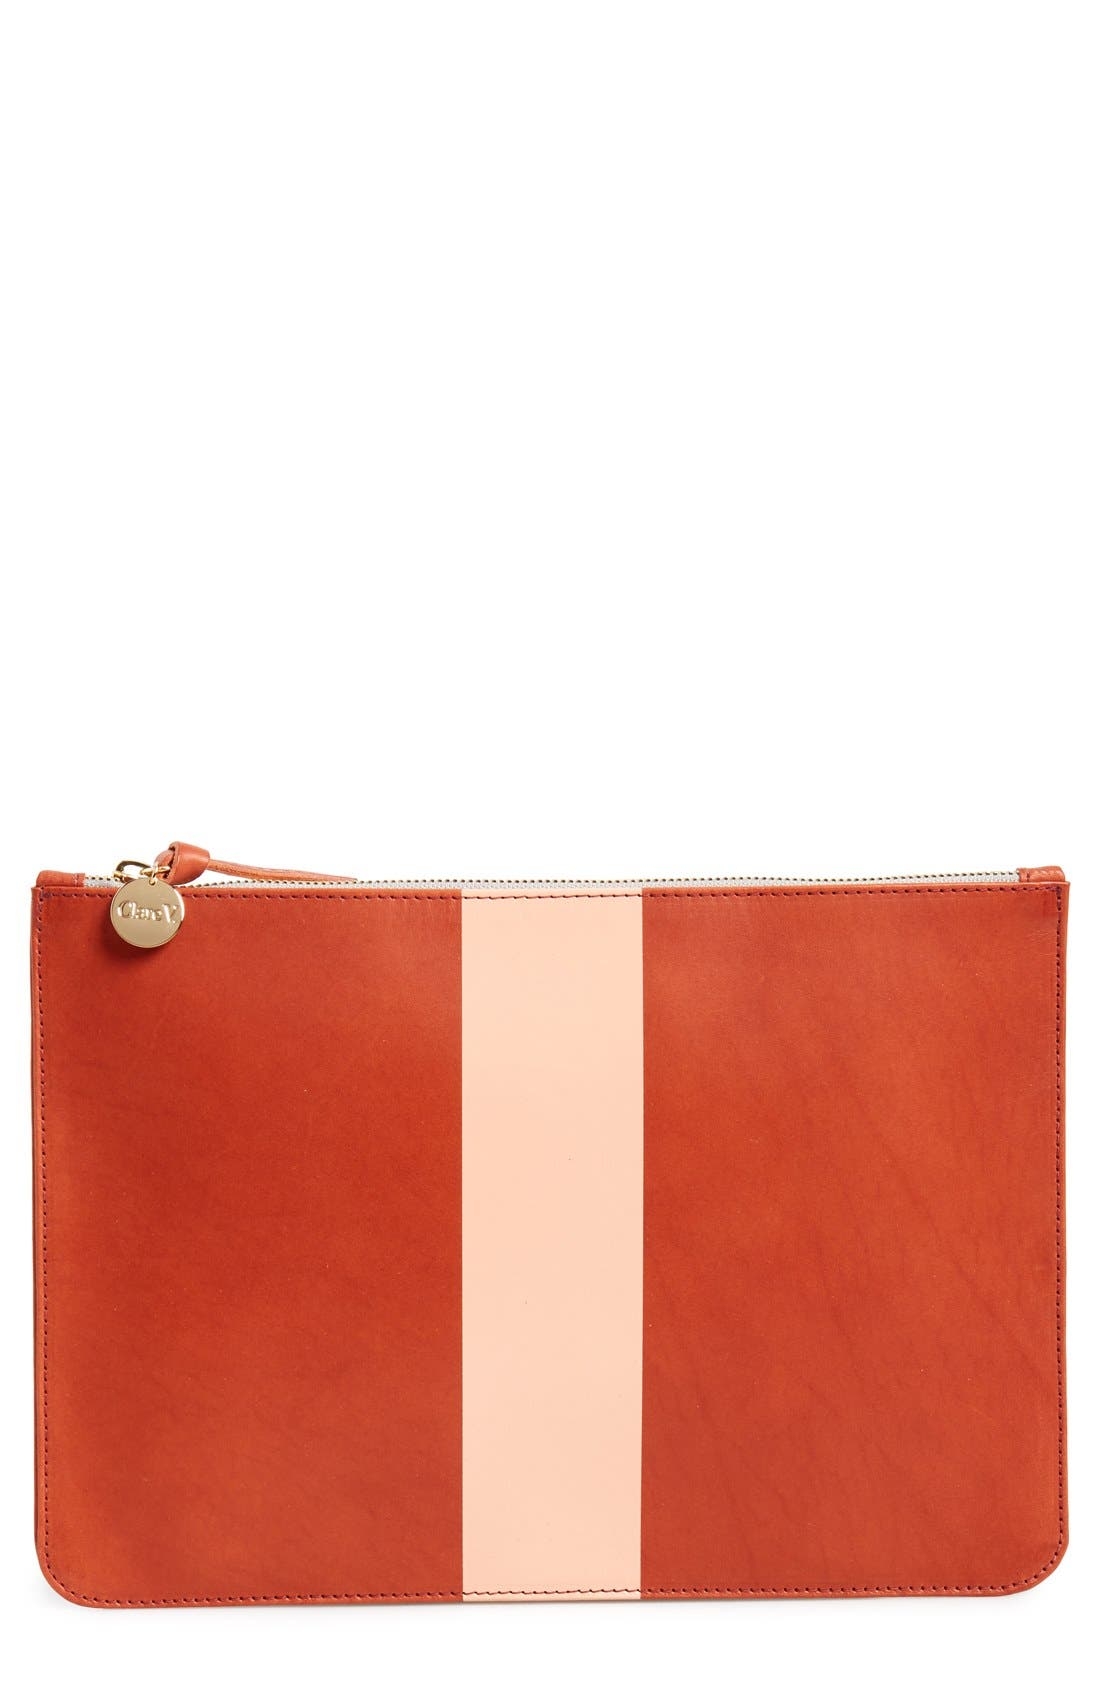 Alternate Image 1 Selected - Clare V. Colorblock Leather Zip Clutch